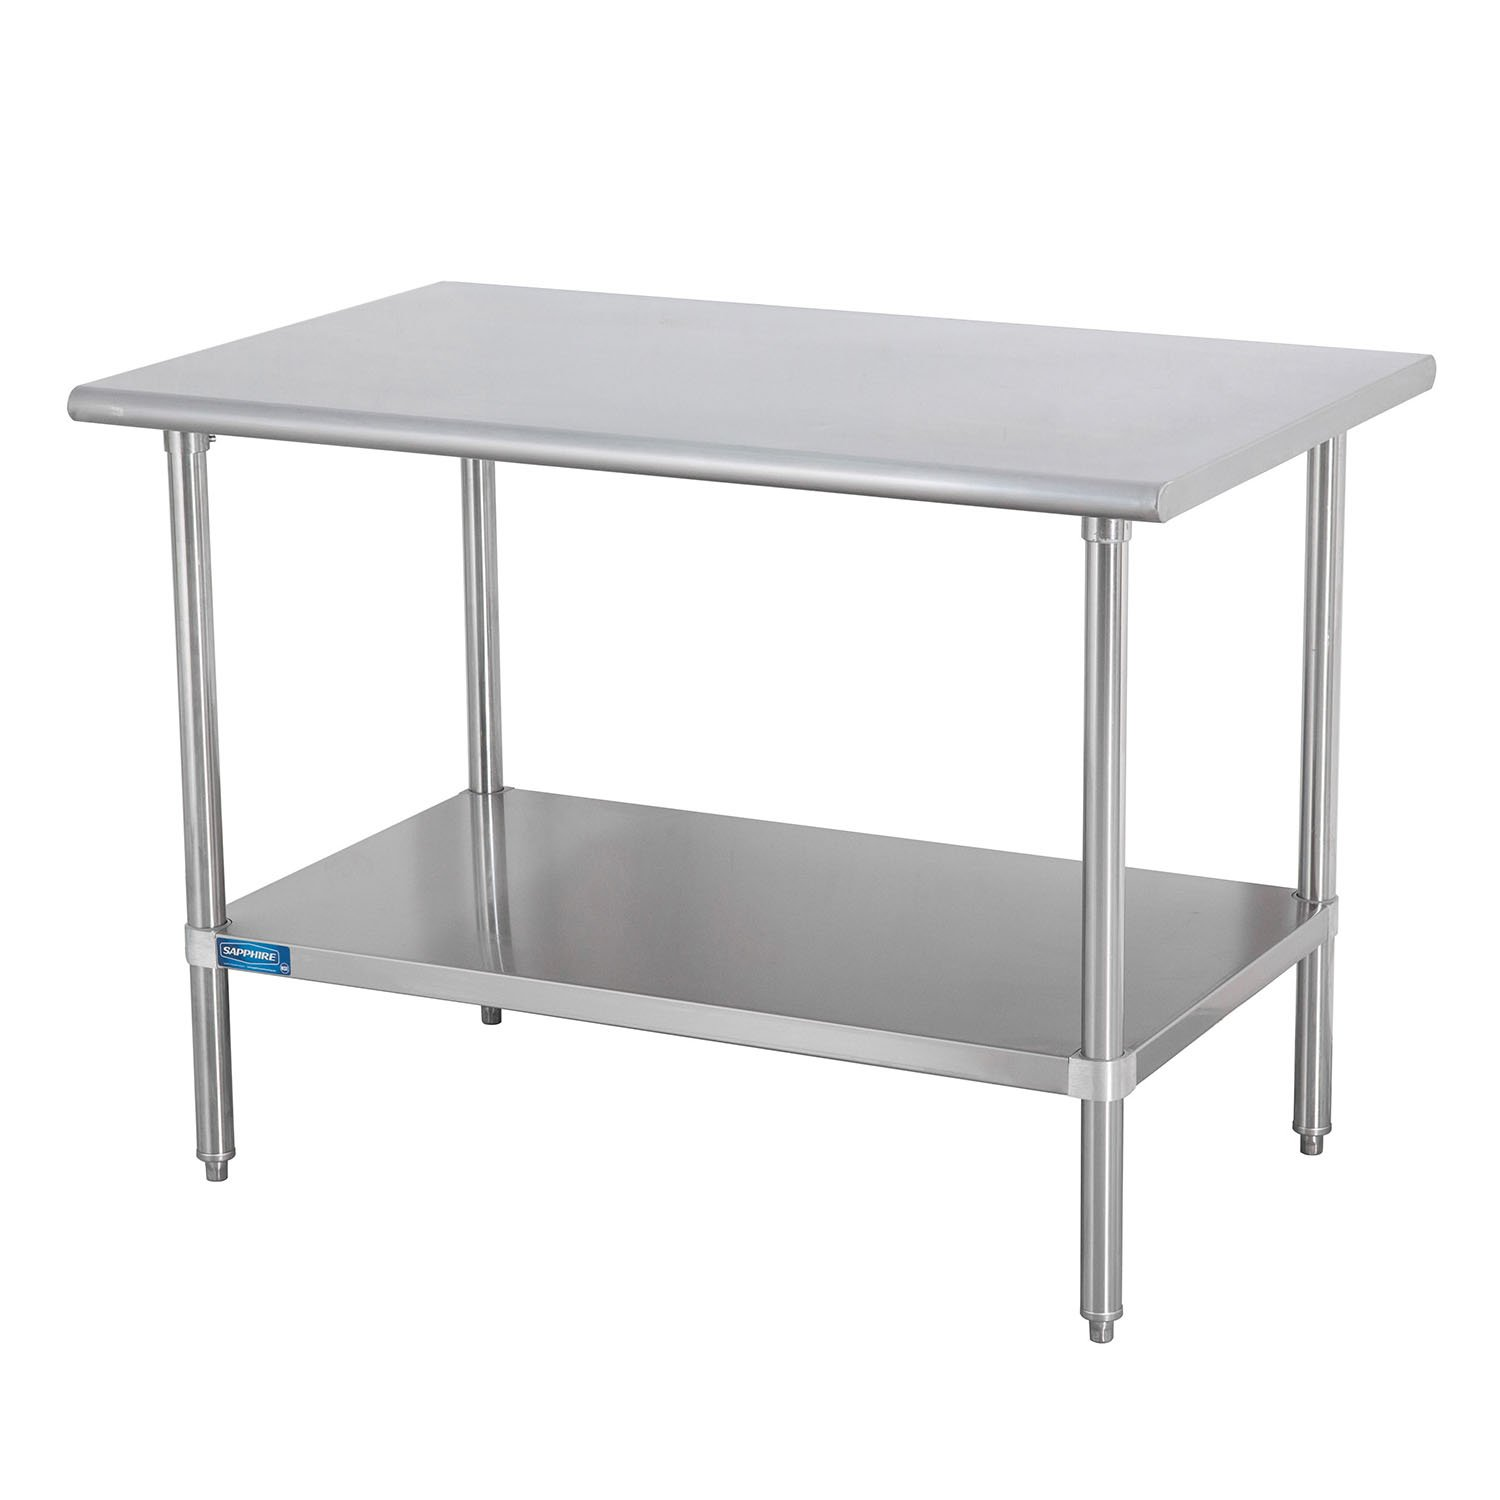 Sapphire Manufacturing Commercial Worktable 30 Wide x 18 Deep x 36 High Stainless Steel Top with Galvanized Steel Legs and Undershelf